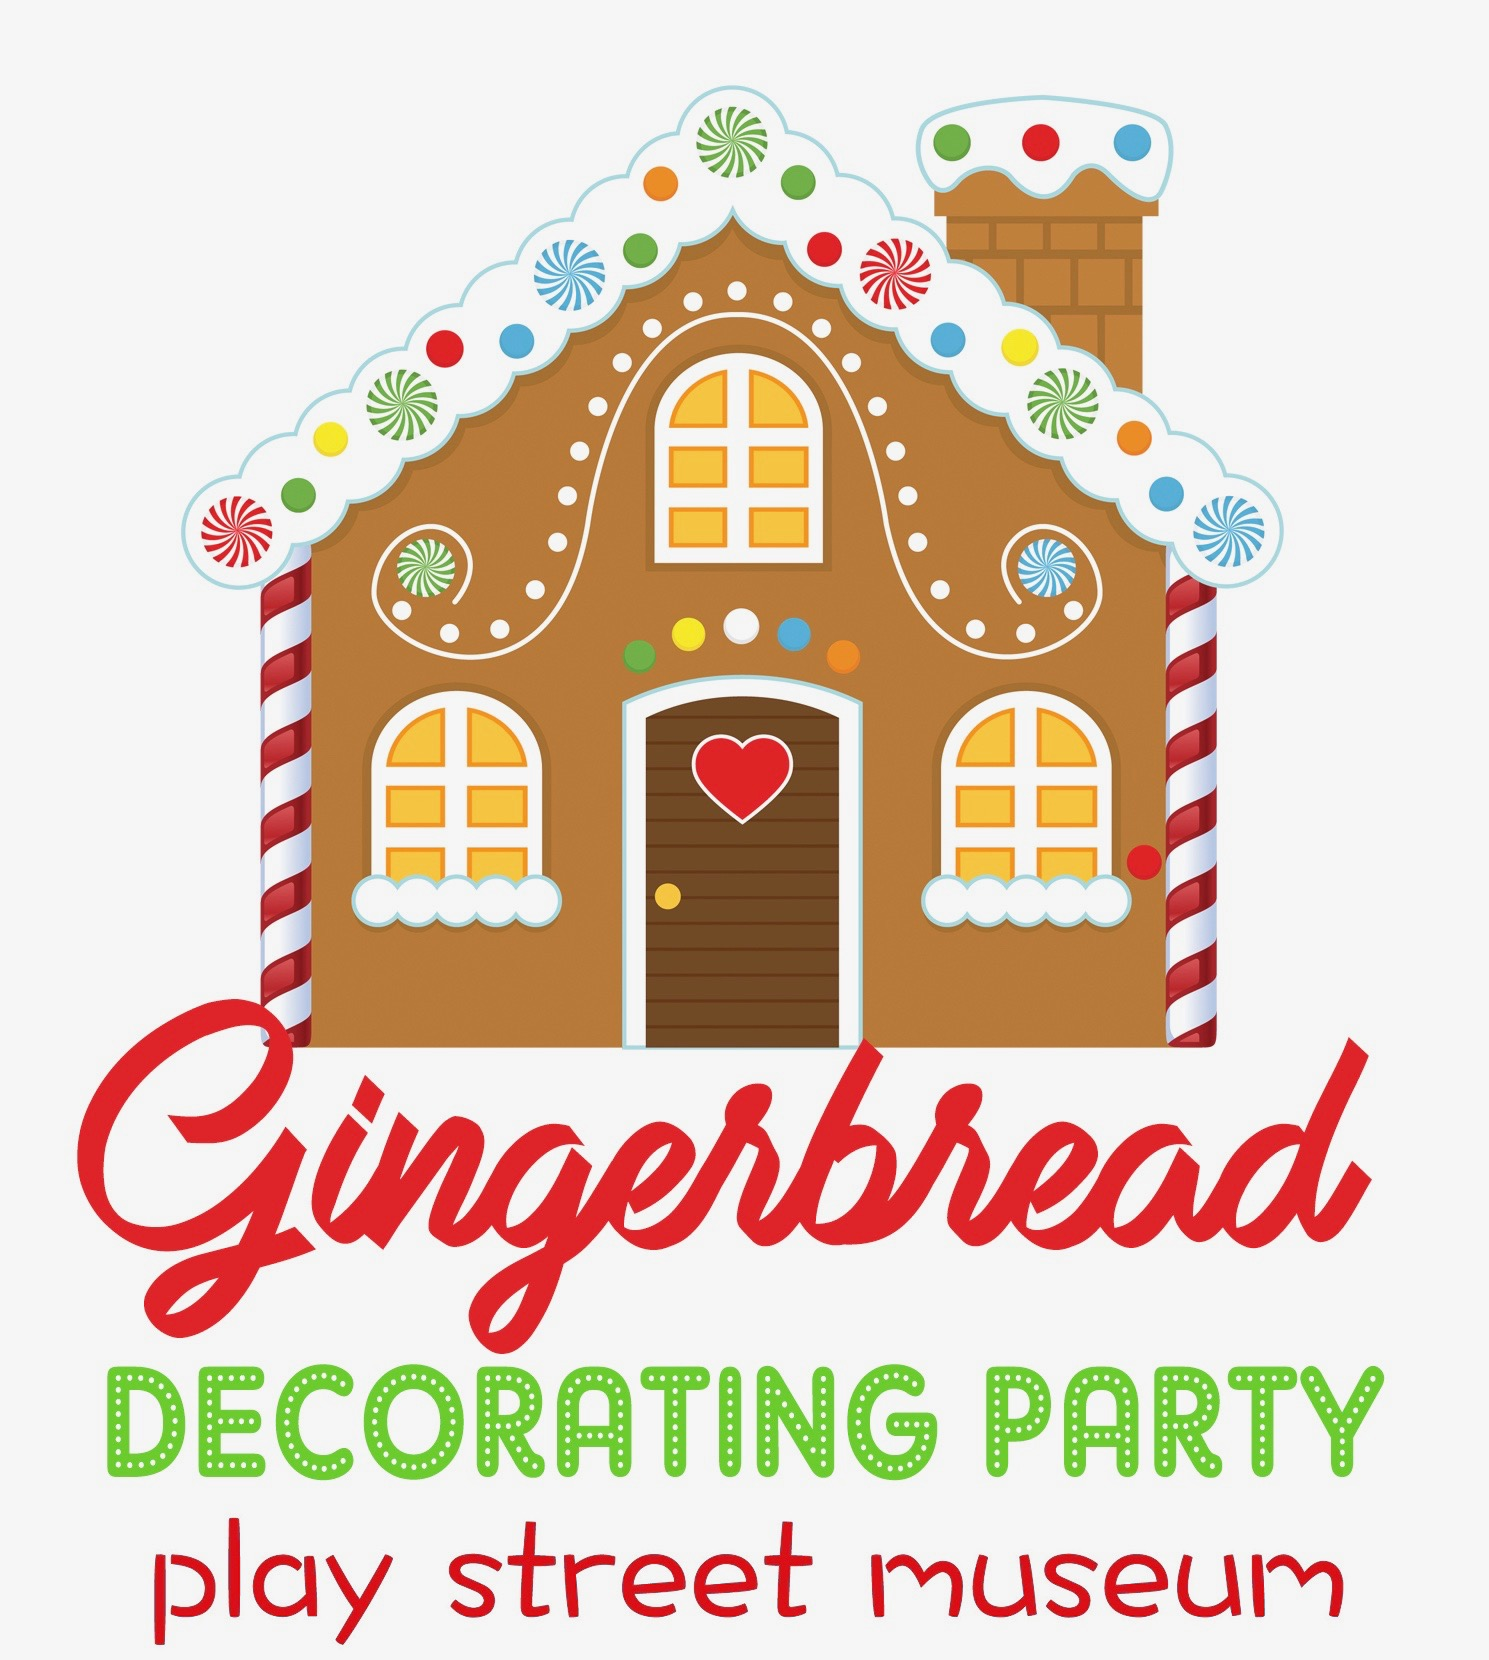 Gingerbread cropped.jpg